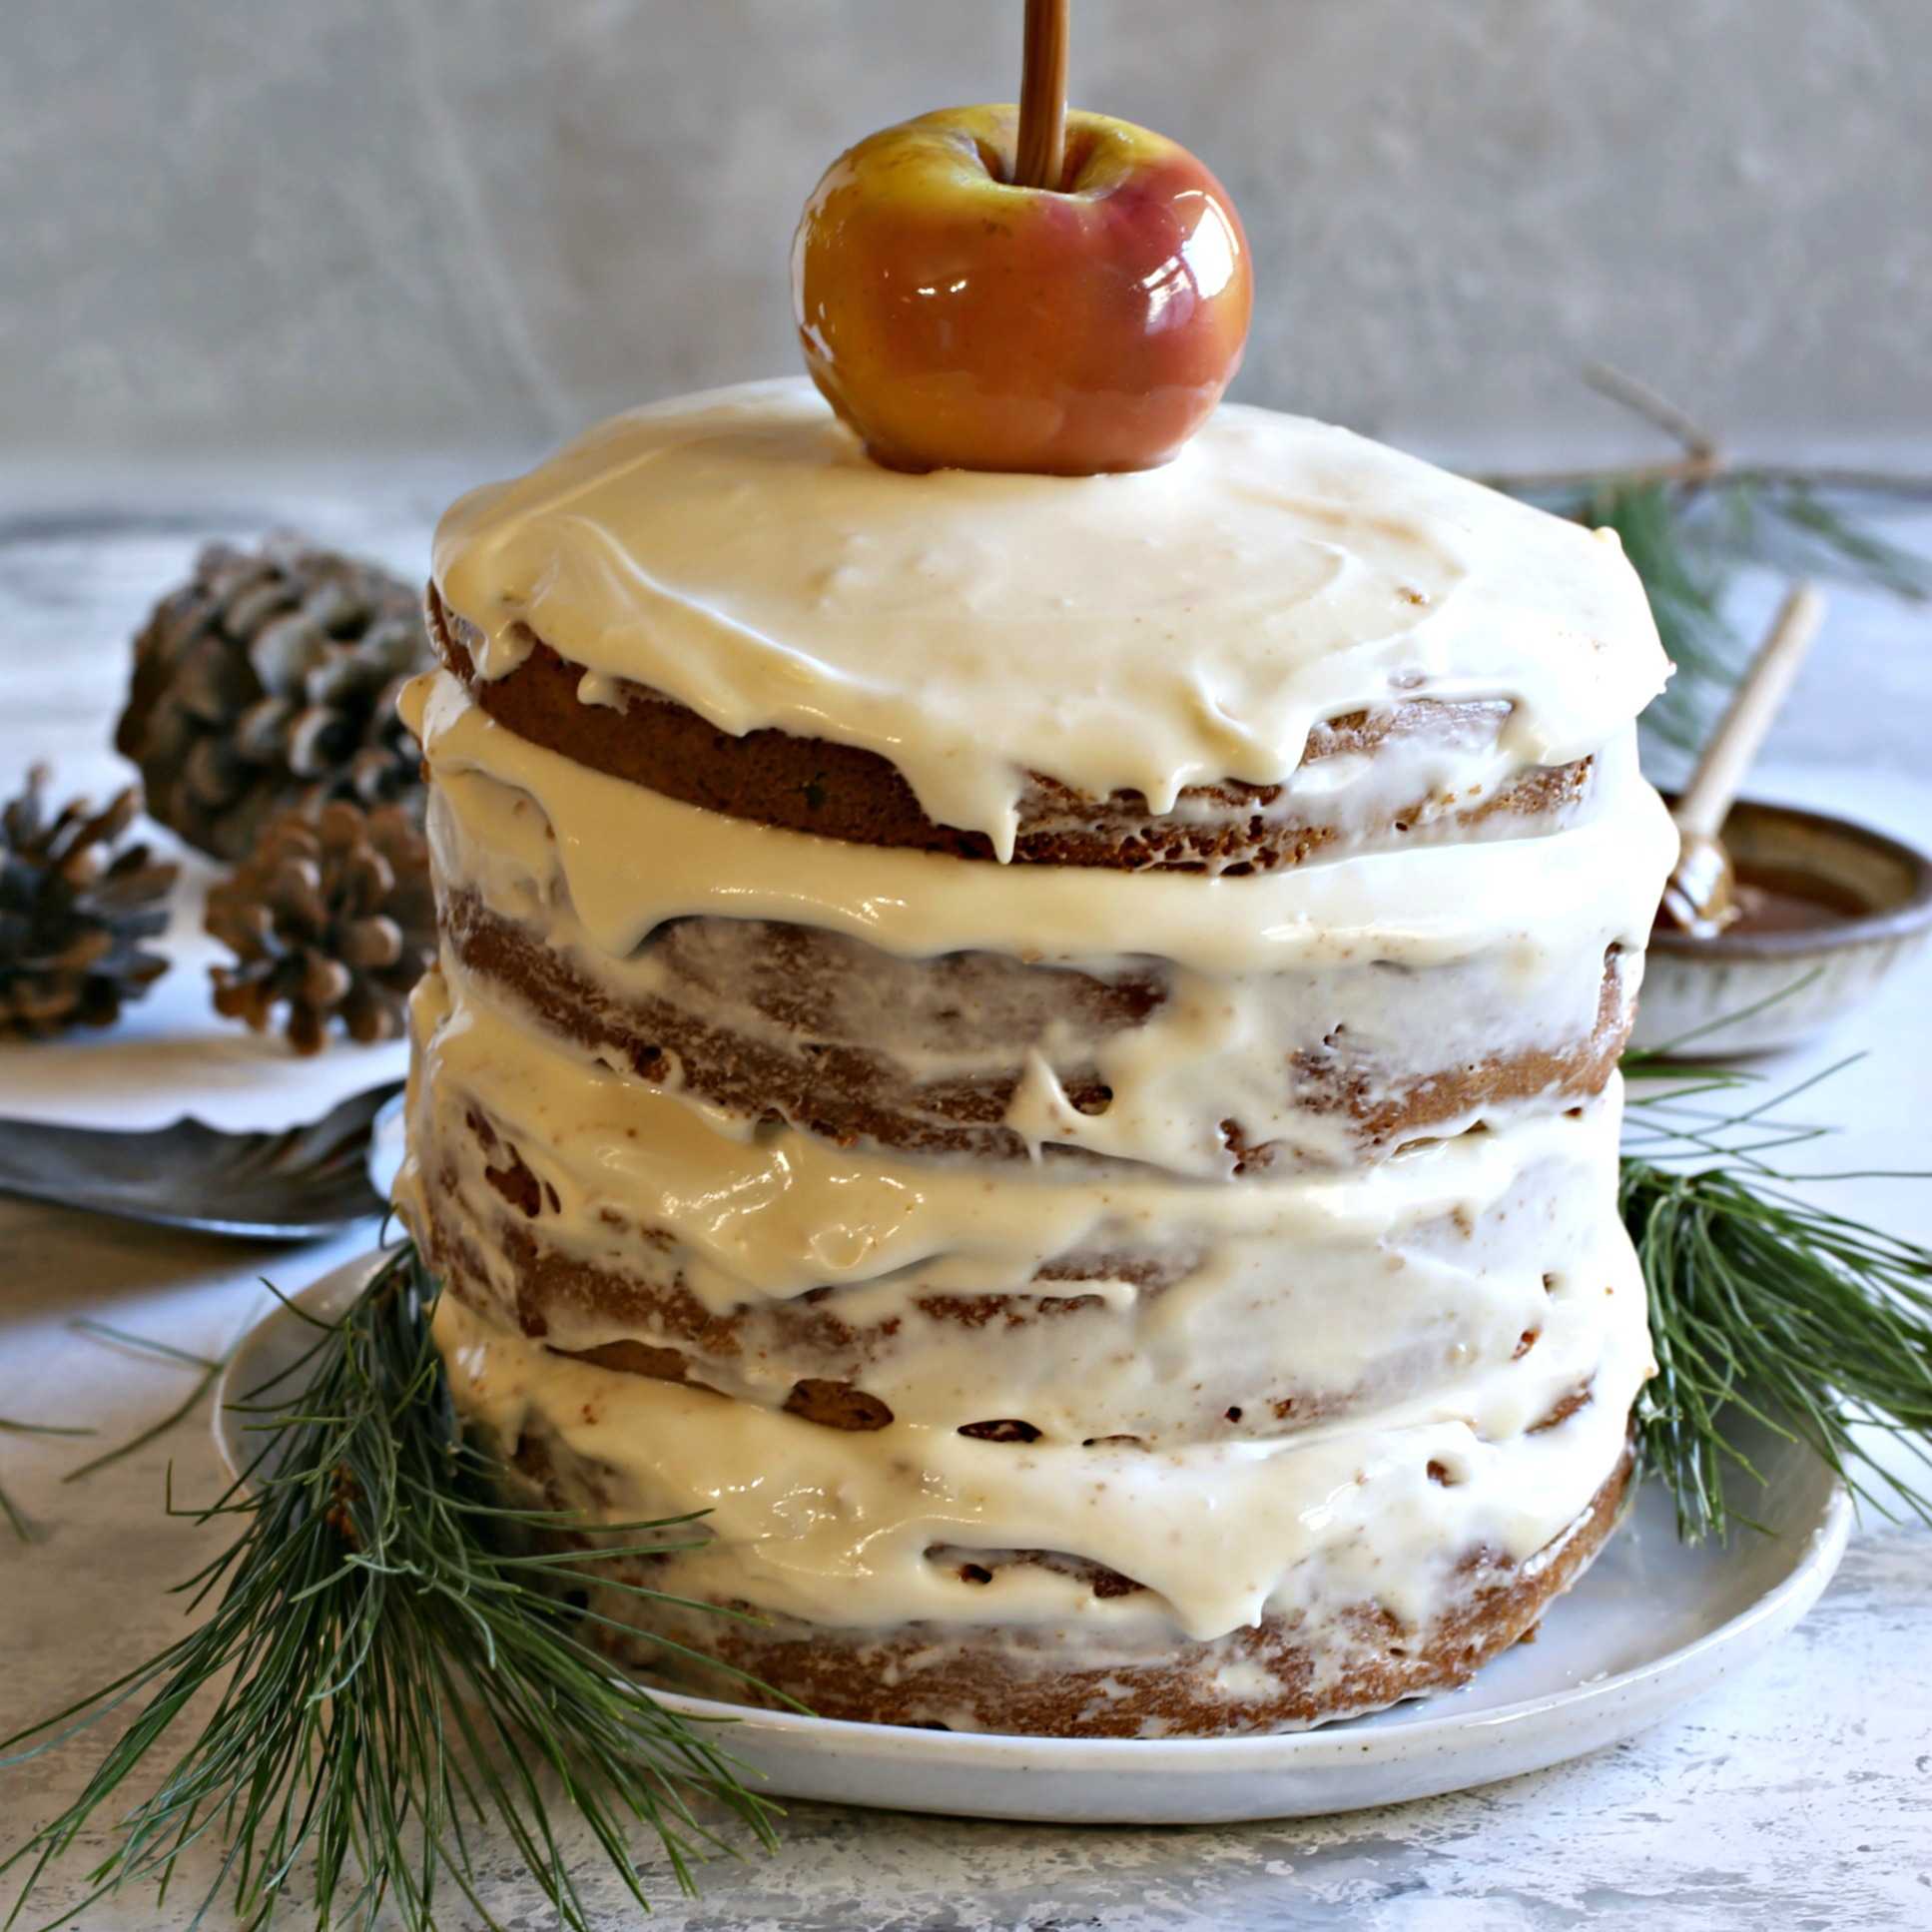 Recipe for a layered honey gingerbread cake, filled with apples and honey cream cheese frosting.